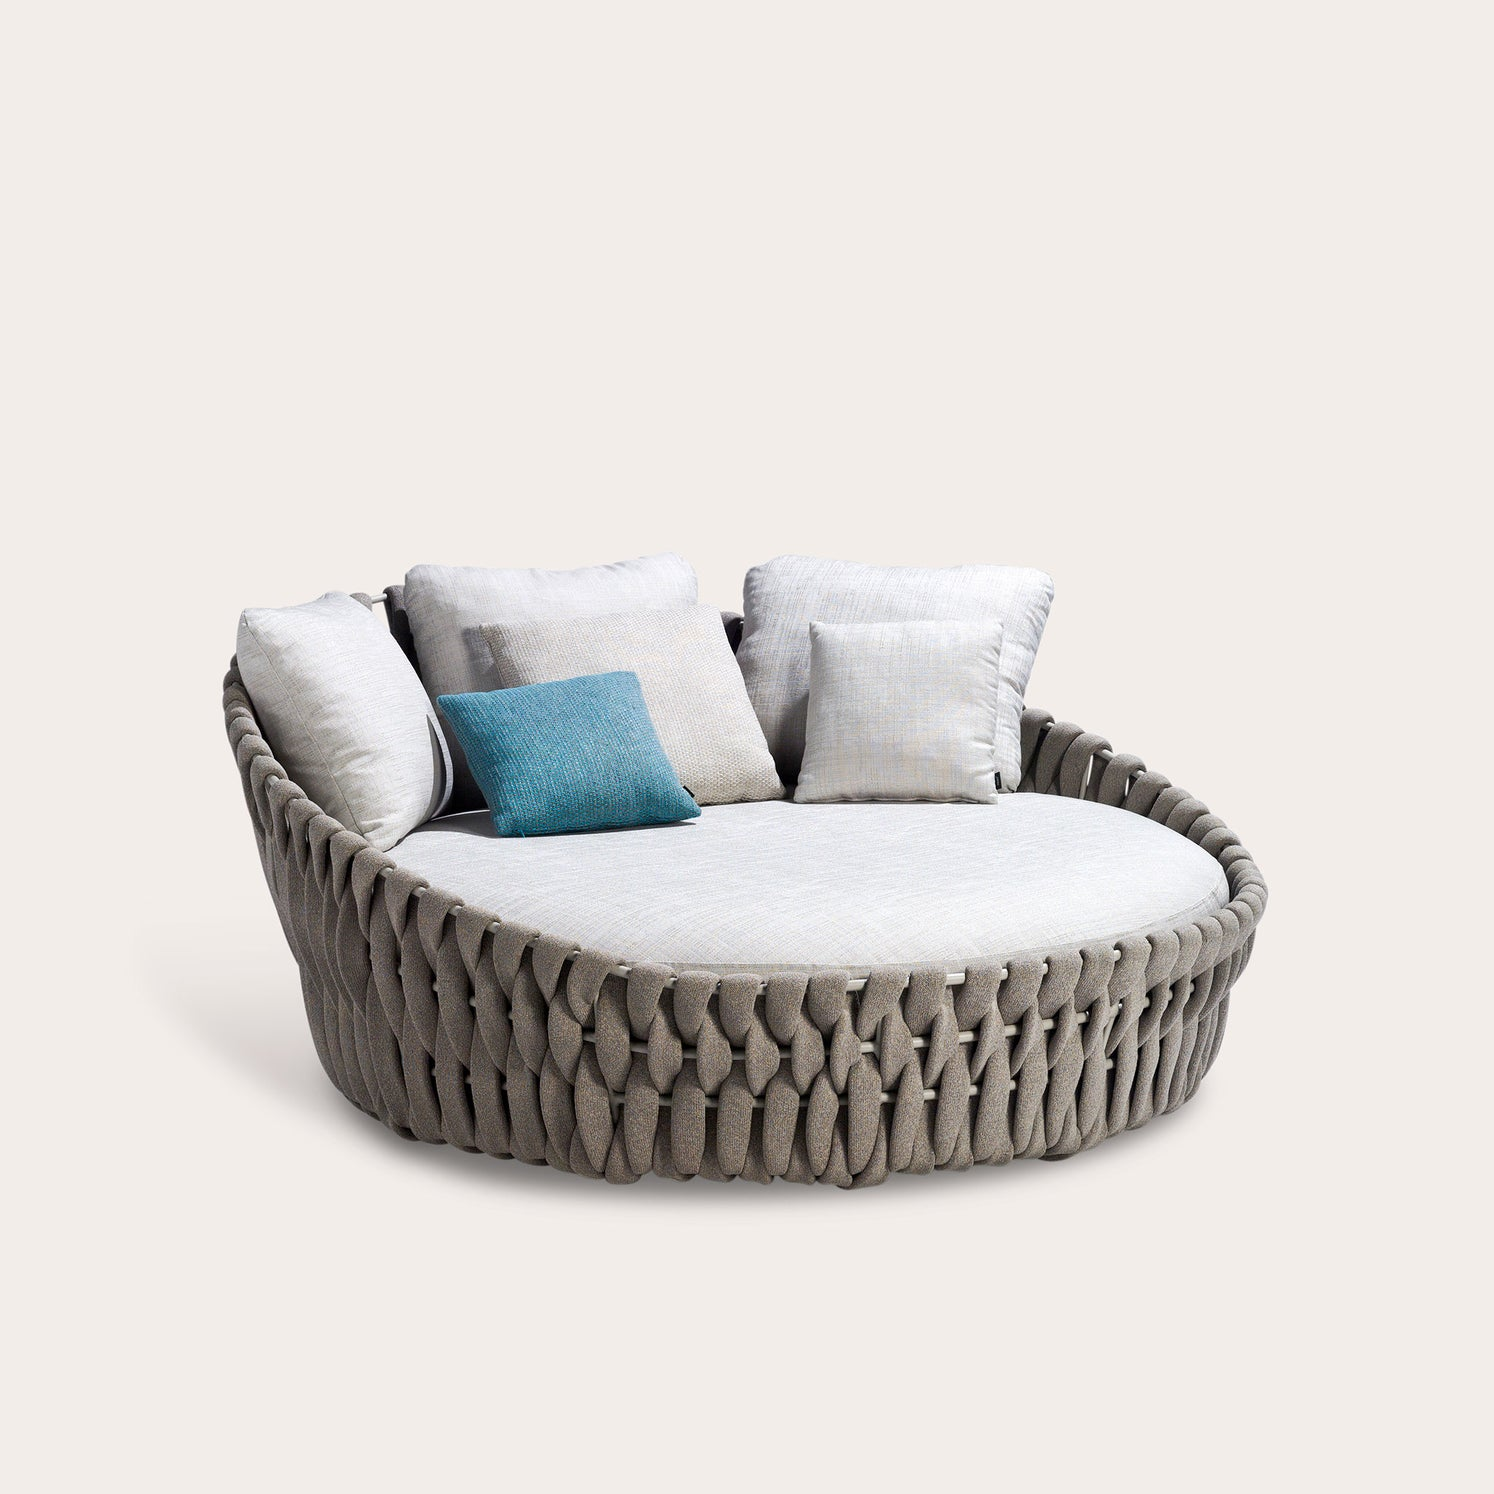 TOSCA Daybed Outdoor Monica Armani Designer Furniture Sku: 007-200-10906